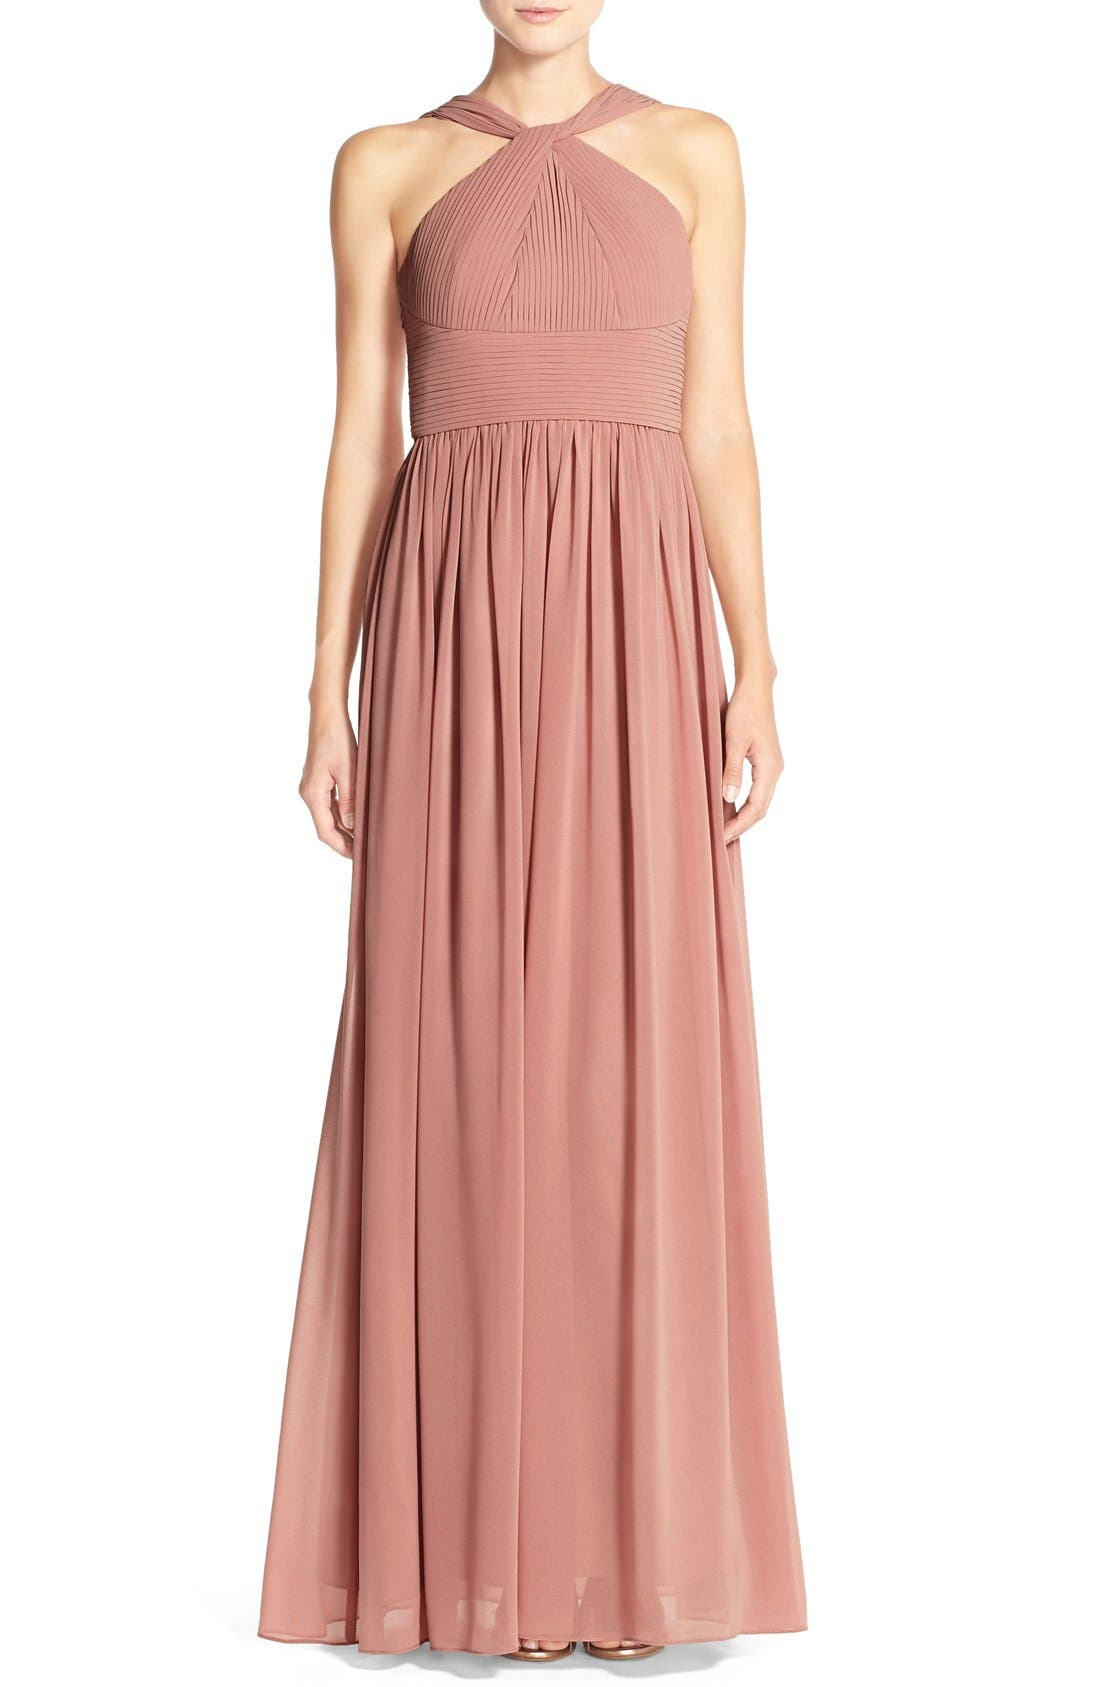 Alternate Image 1 Selected - Donna Morgan 'Hayley' Halter Style Pleat Chiffon Gown